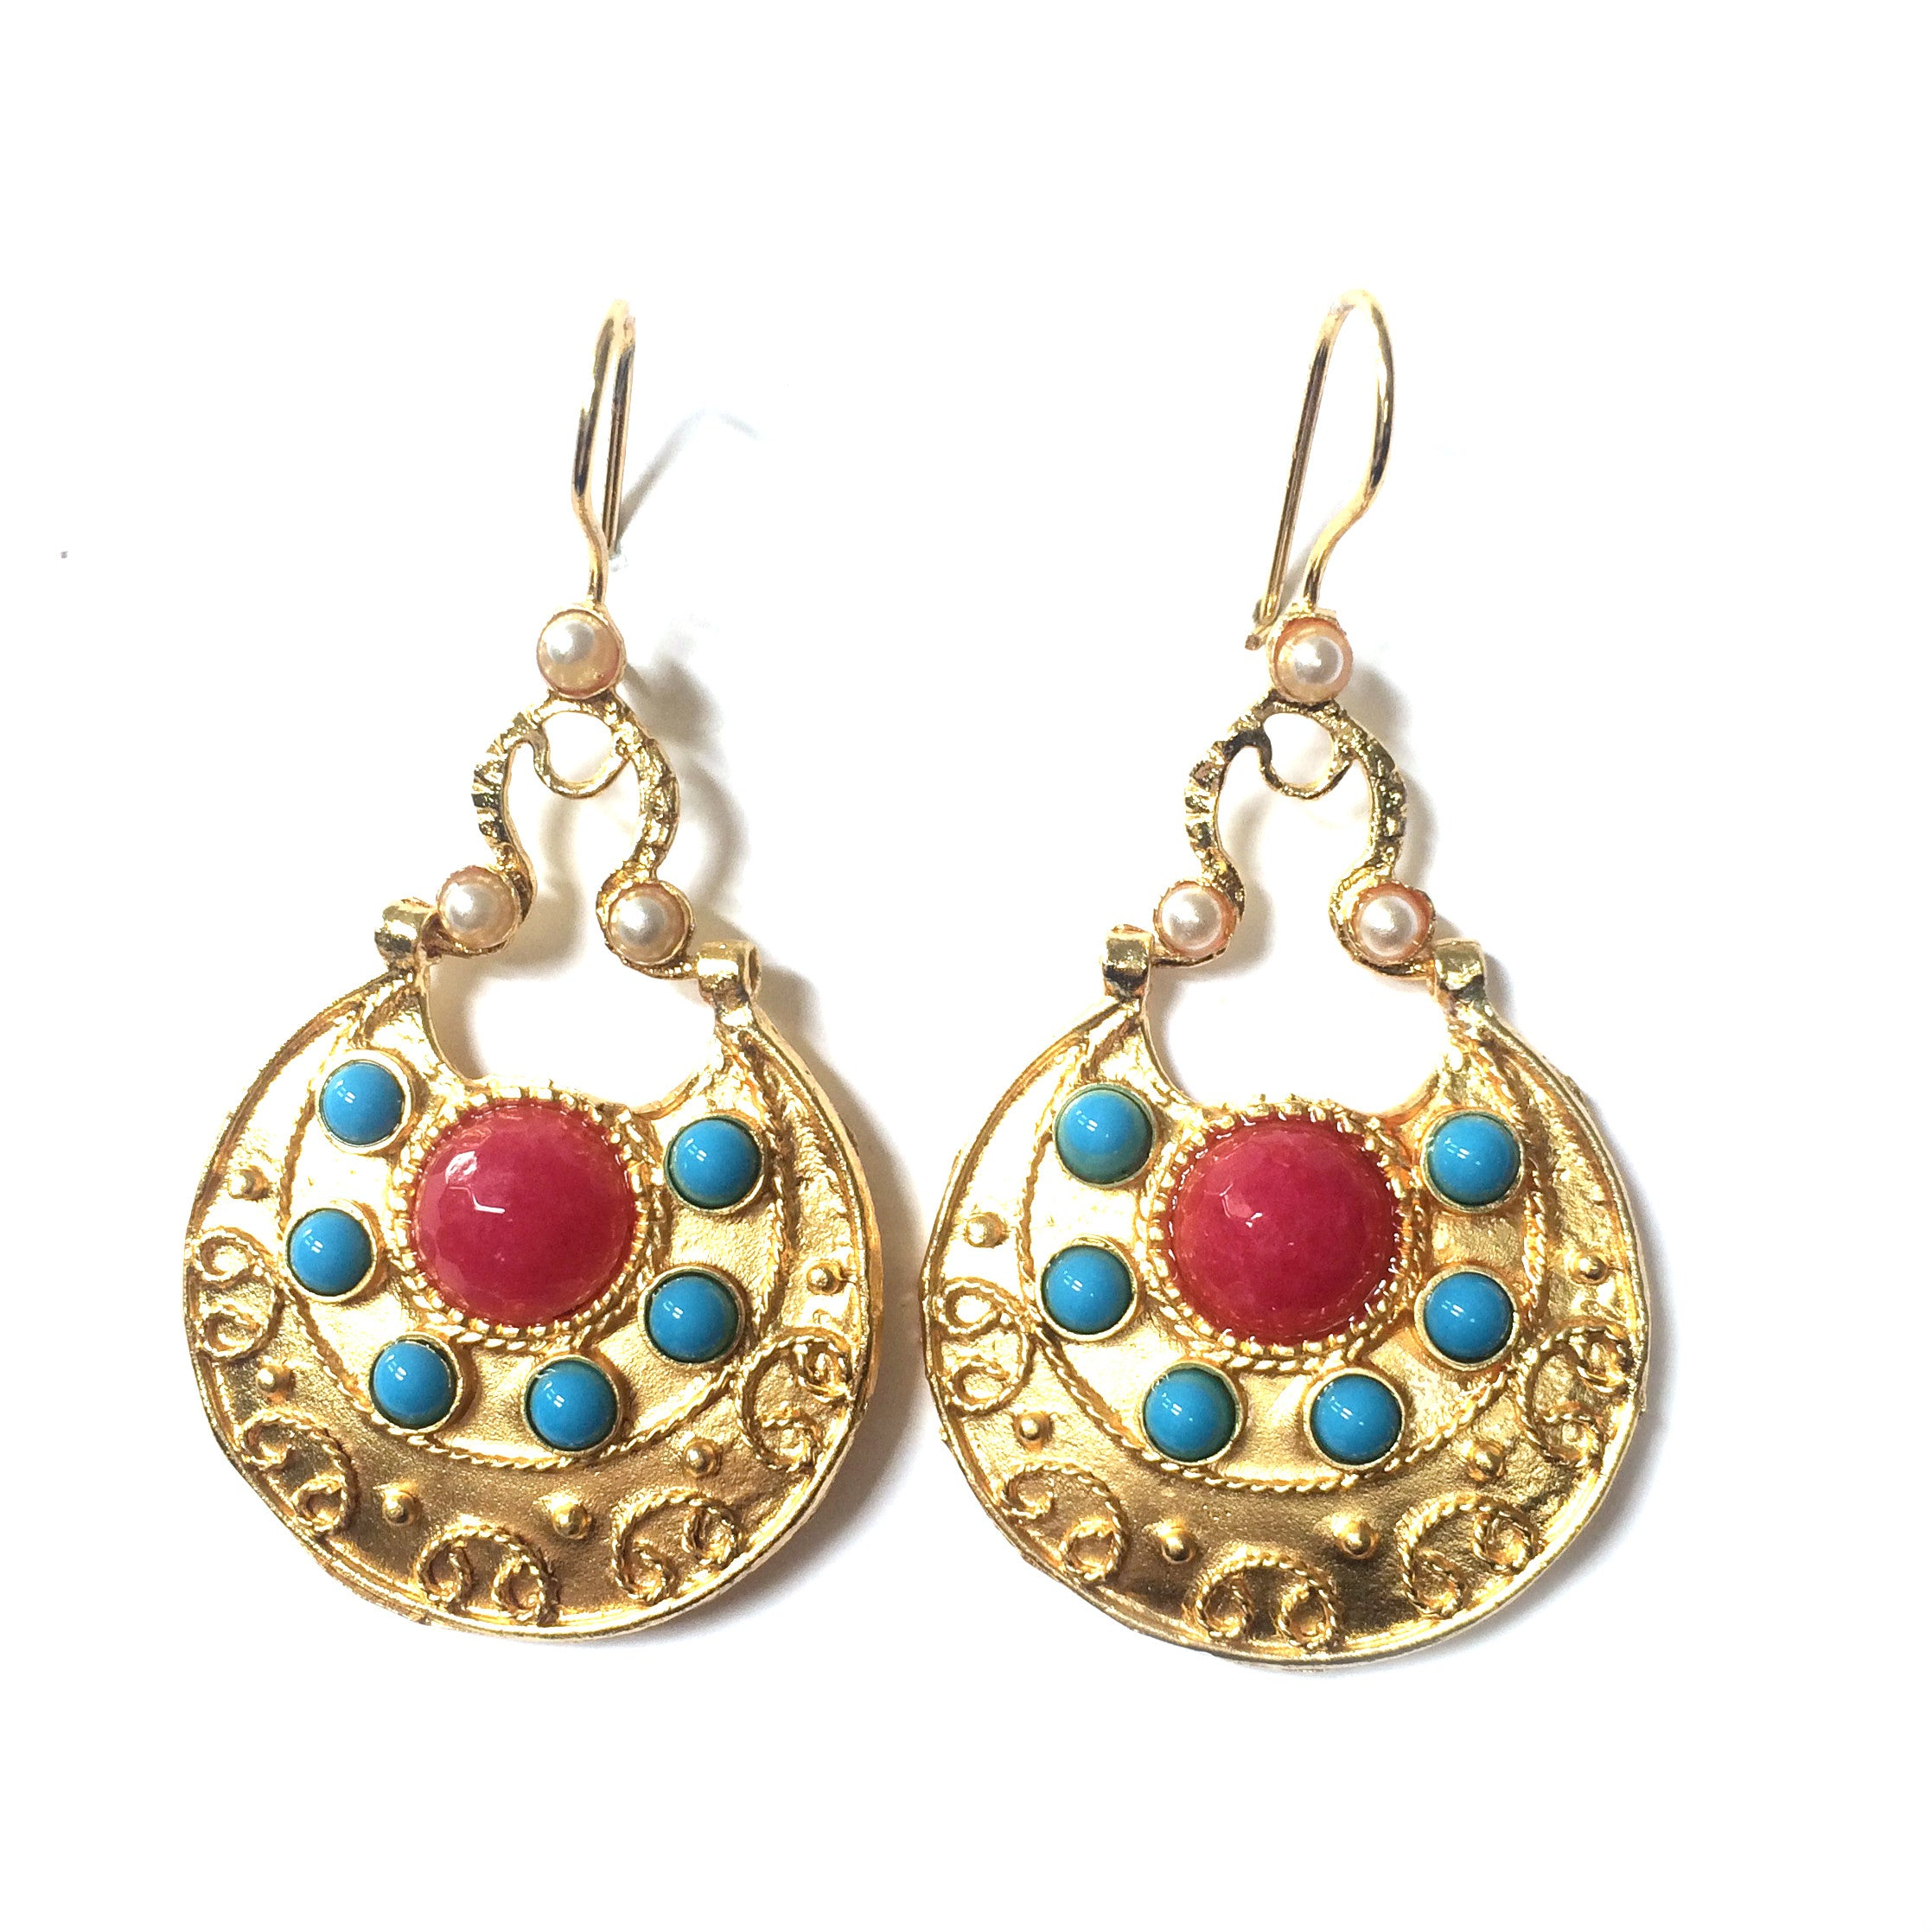 Ottoman Earring : Blue & Red